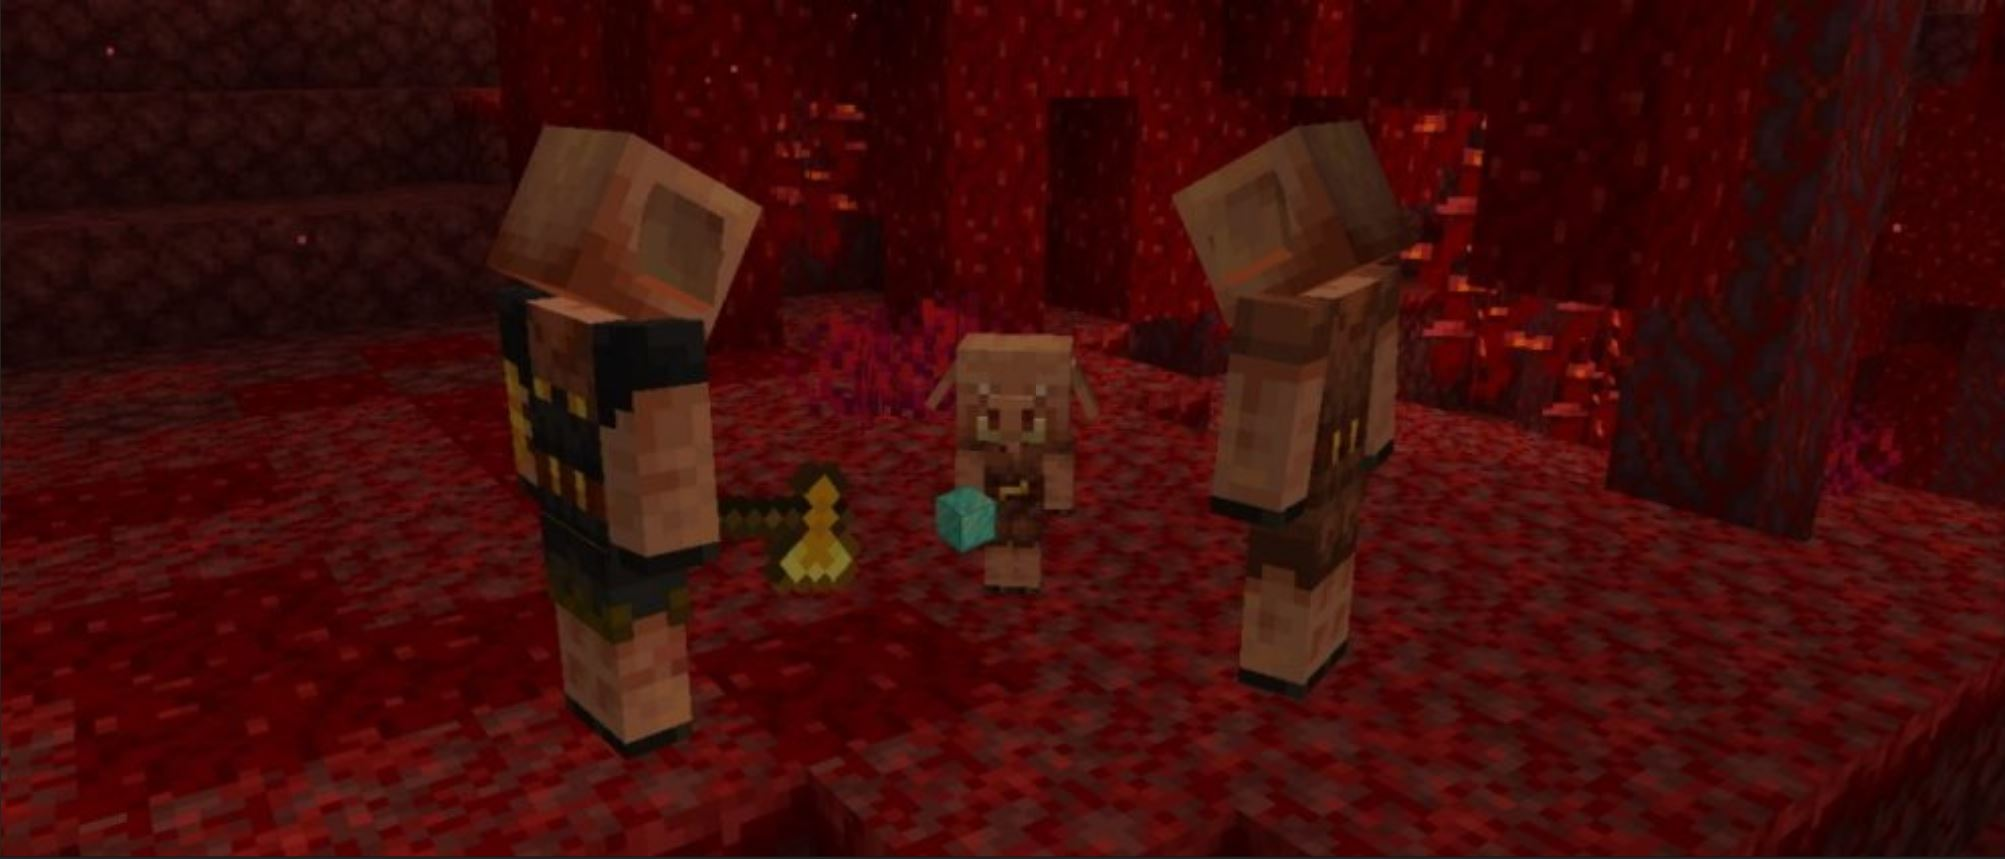 Minecraft Java 1.16.3 Released: A Minecraft Update That Fixes Just Two Bugs That Were Introduced By The Nether Update